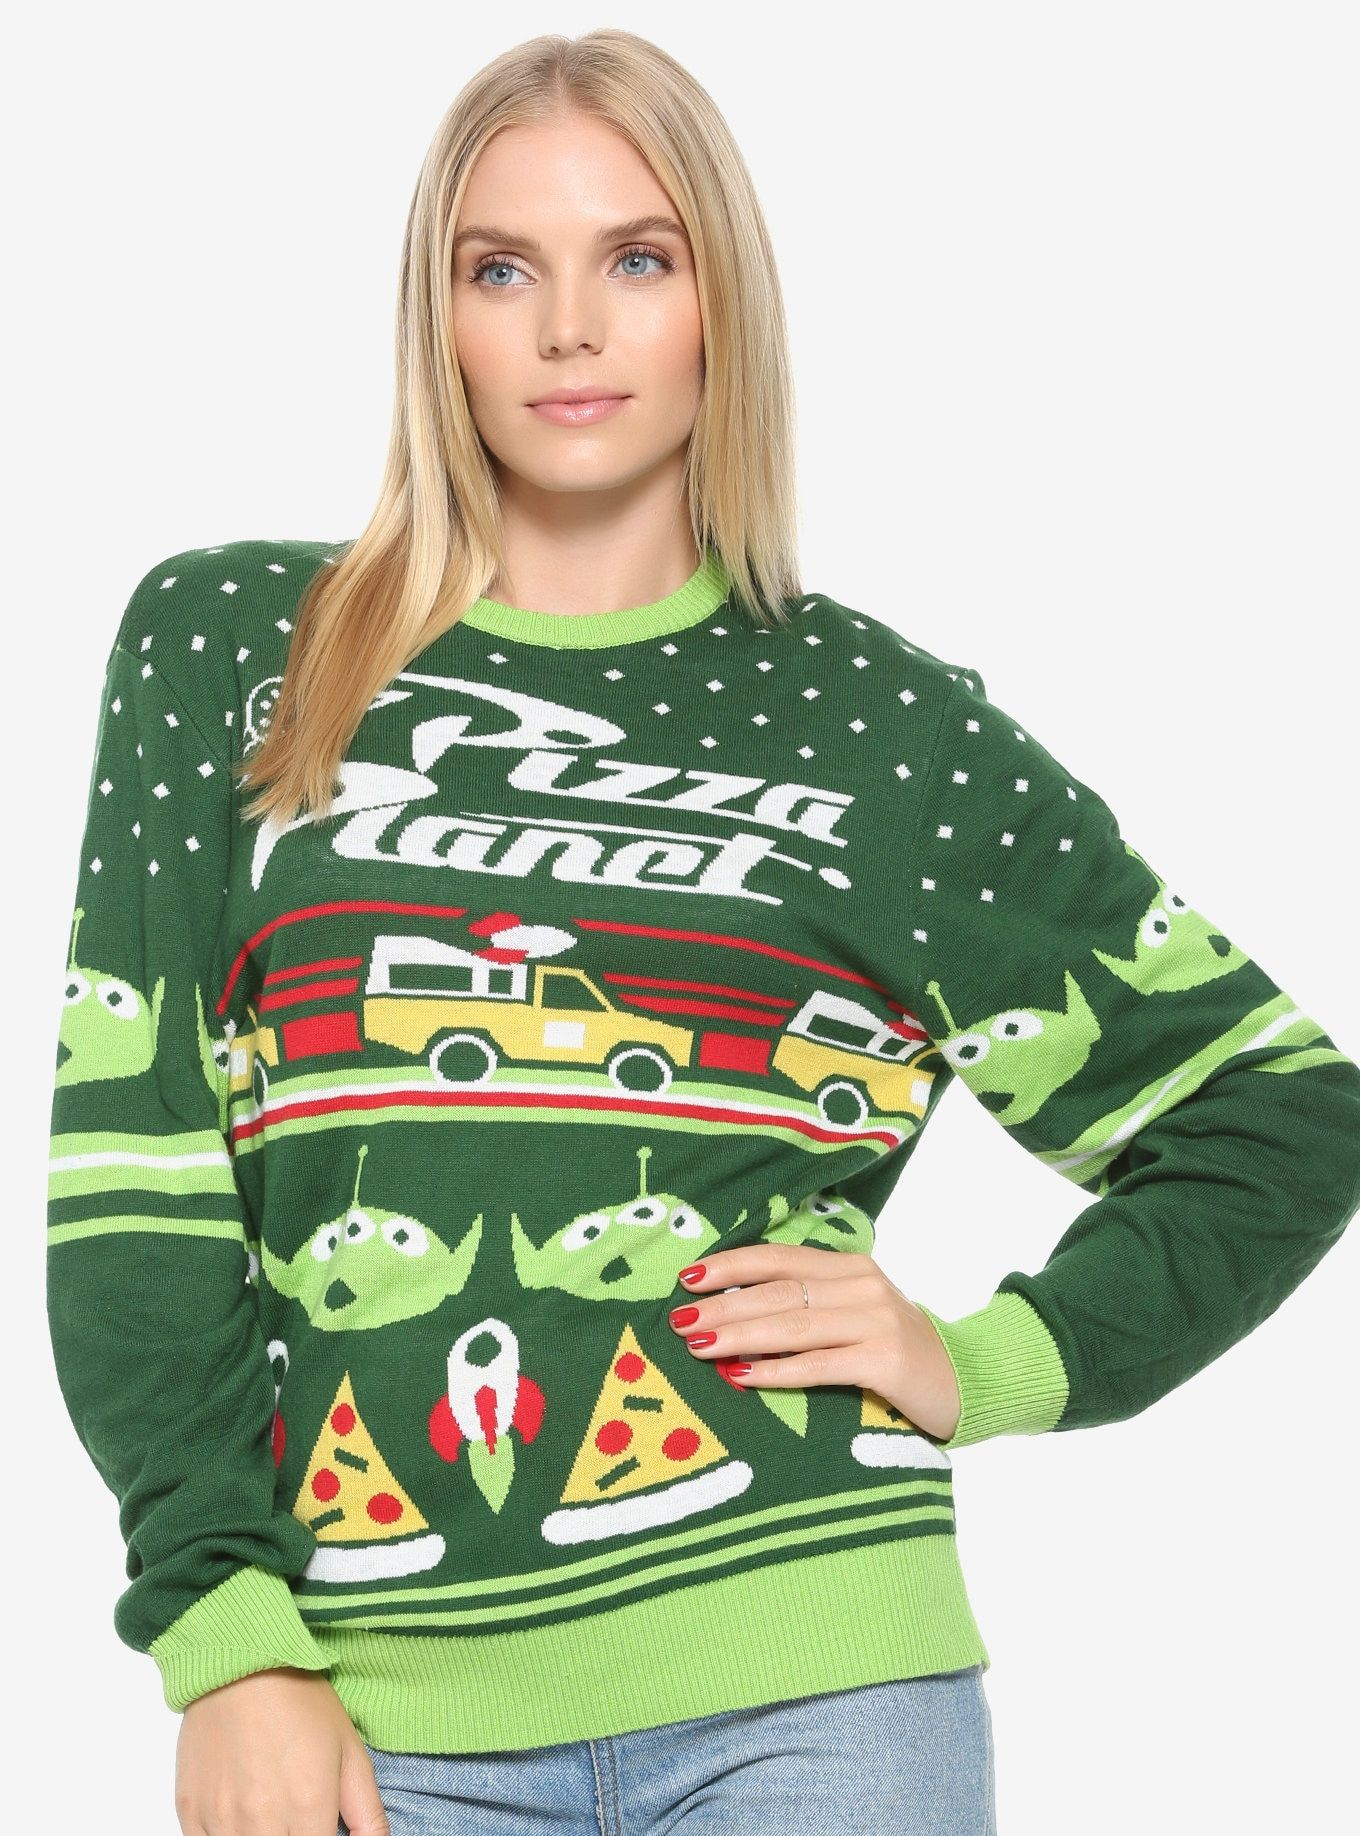 Disney Pixar Toy Story Pizza Holiday Sweater